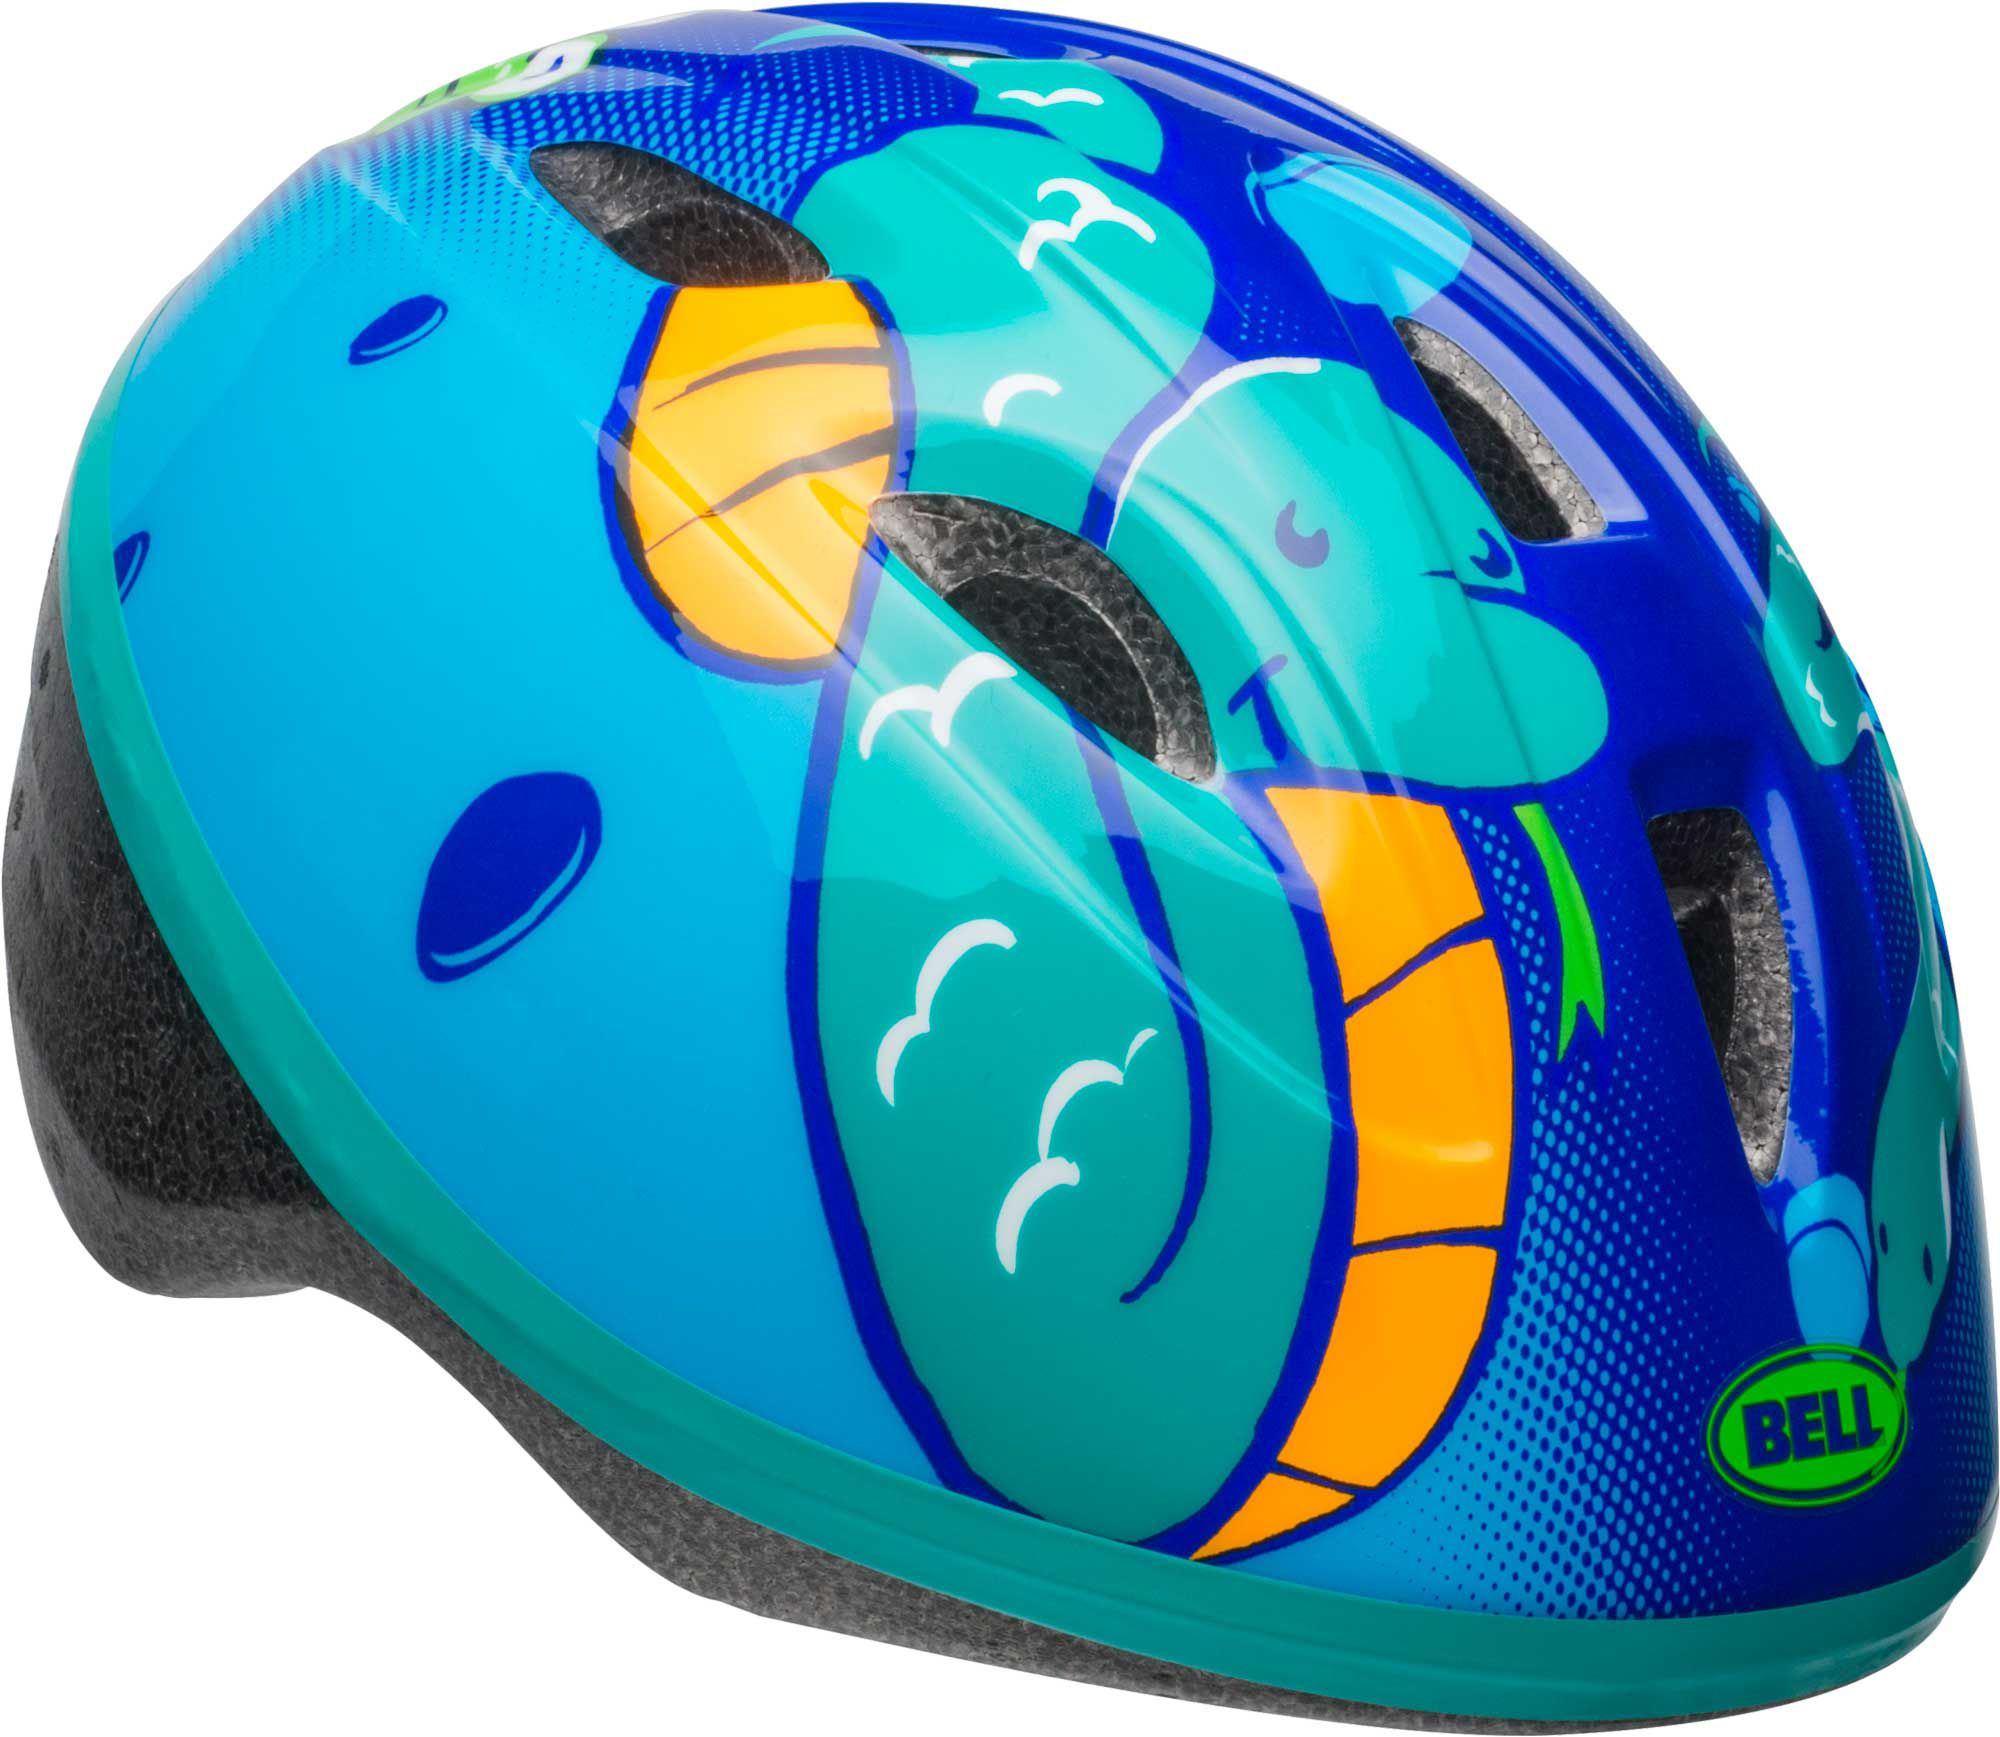 7247f592e6acc Bell Sprout Toddler Bike Helmet